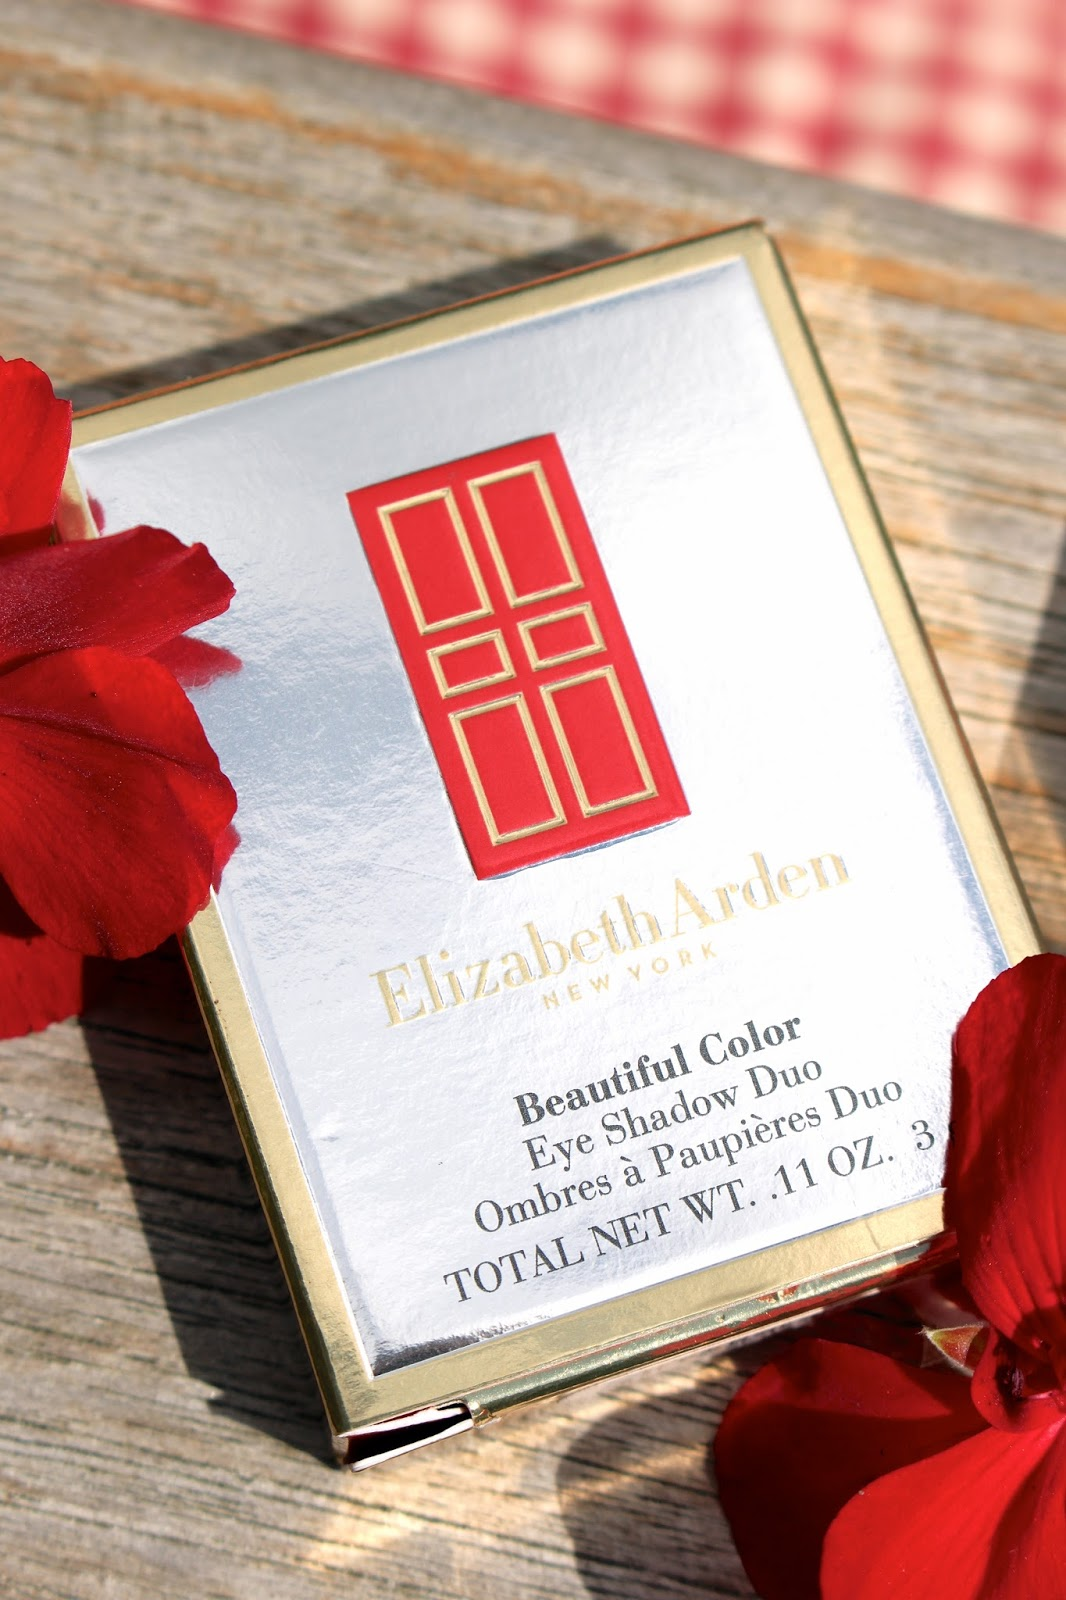 Blog giveaway 2016 elizabeth arden eyeshadow duo